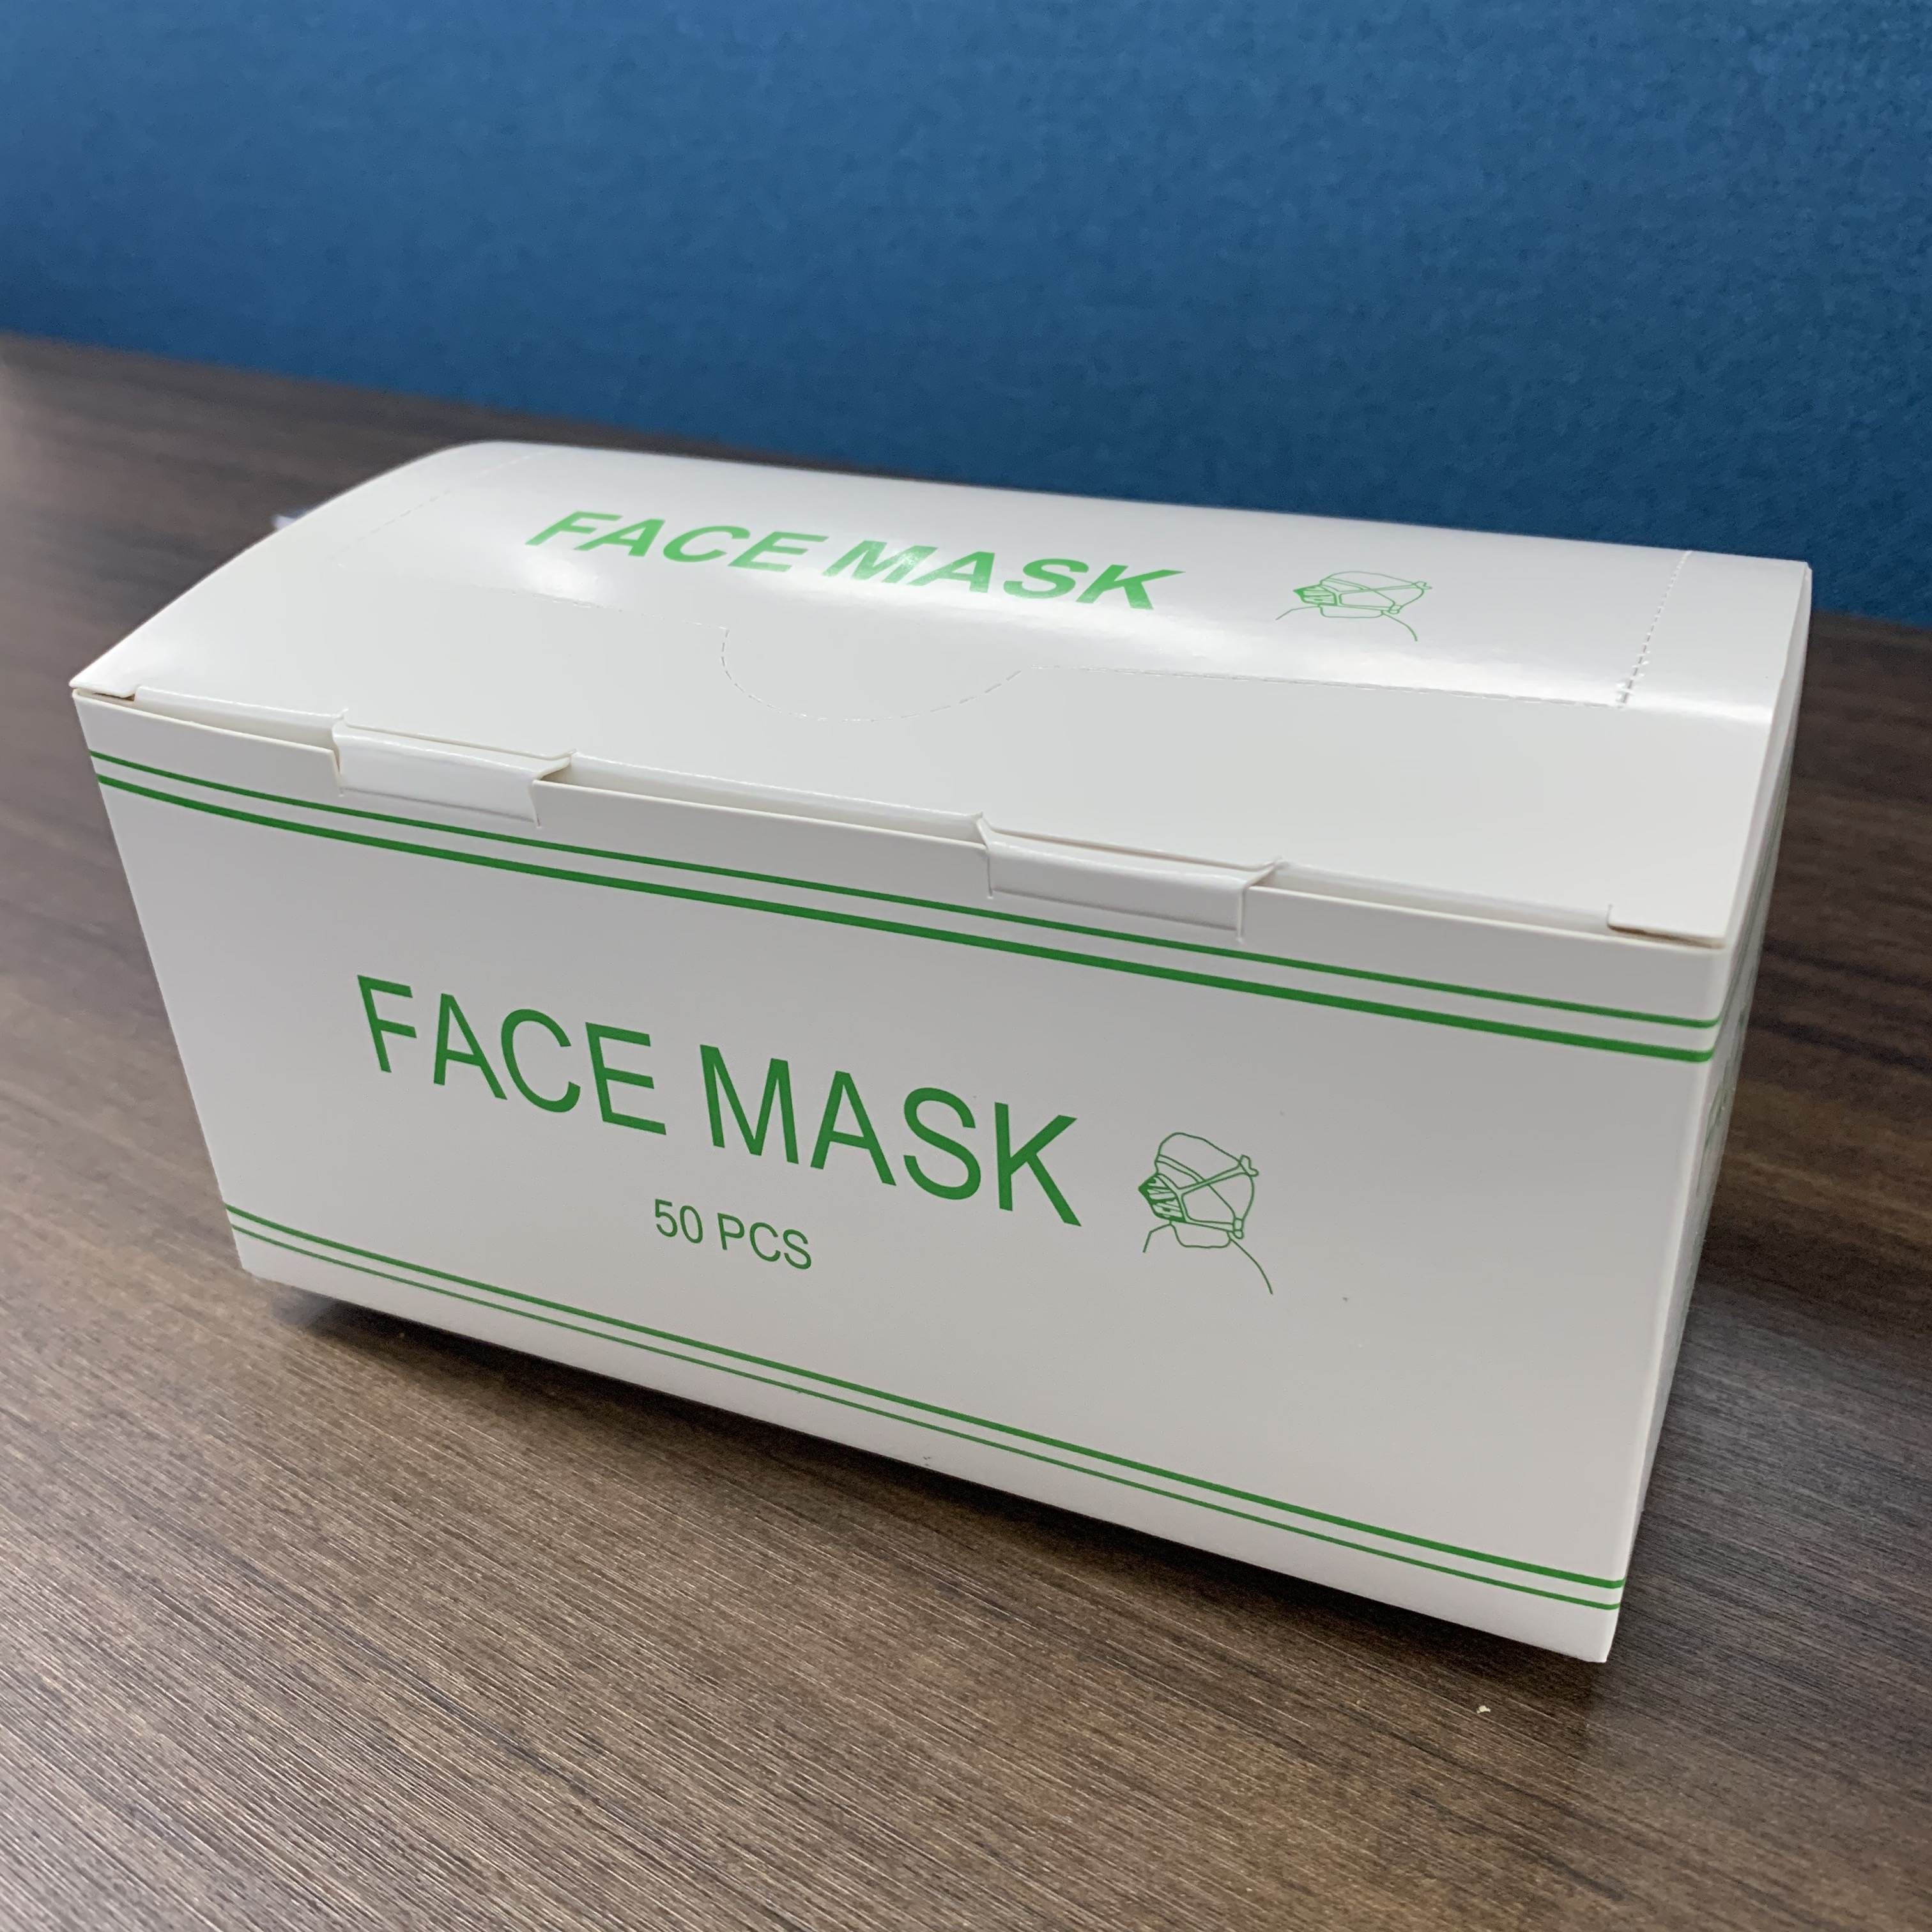 If you have a need for mask, you can consult us.